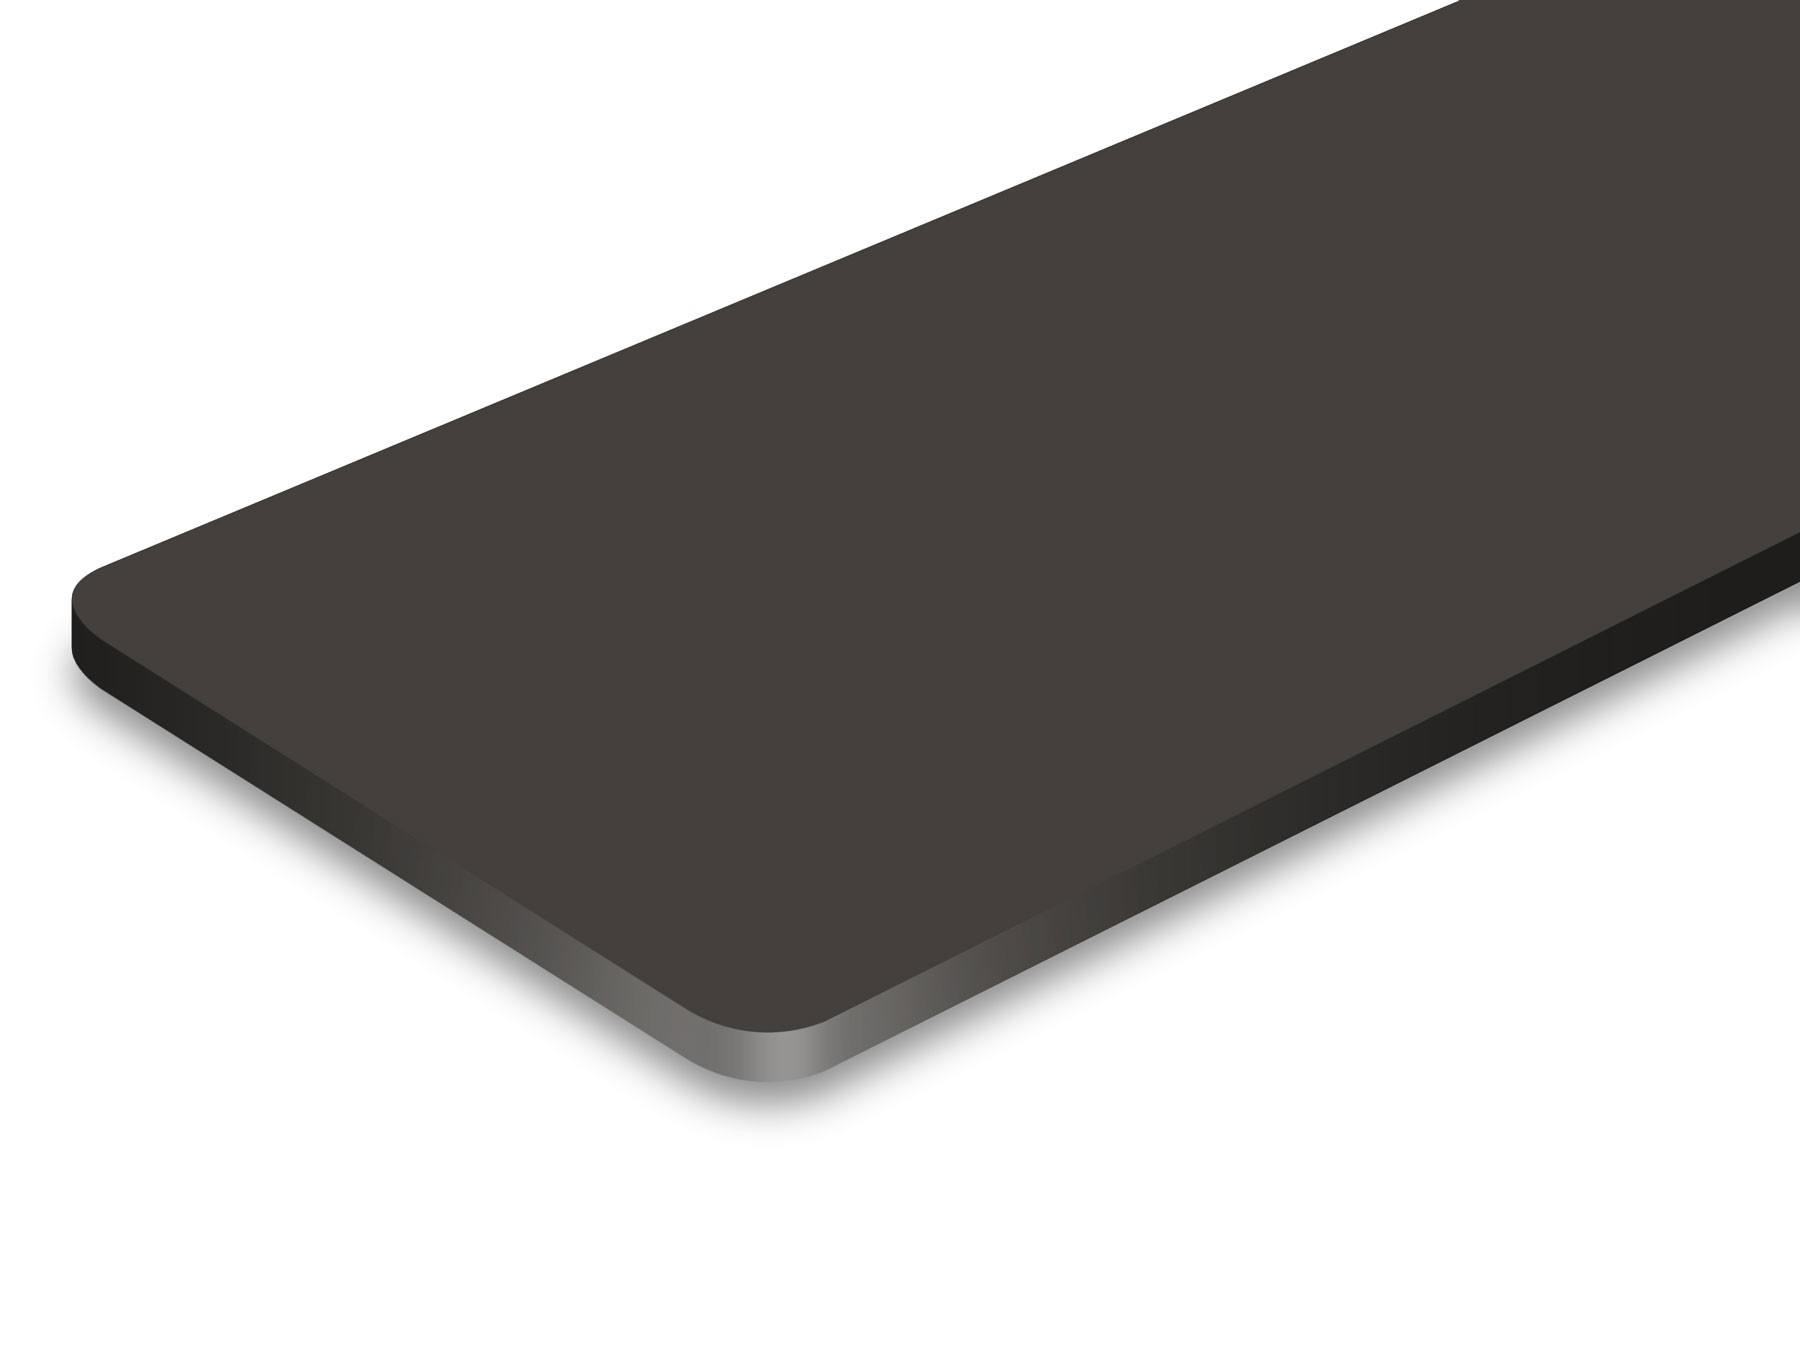 TroLase ADA Signage, Charcoal Gray, 1ply, 0.8 mm